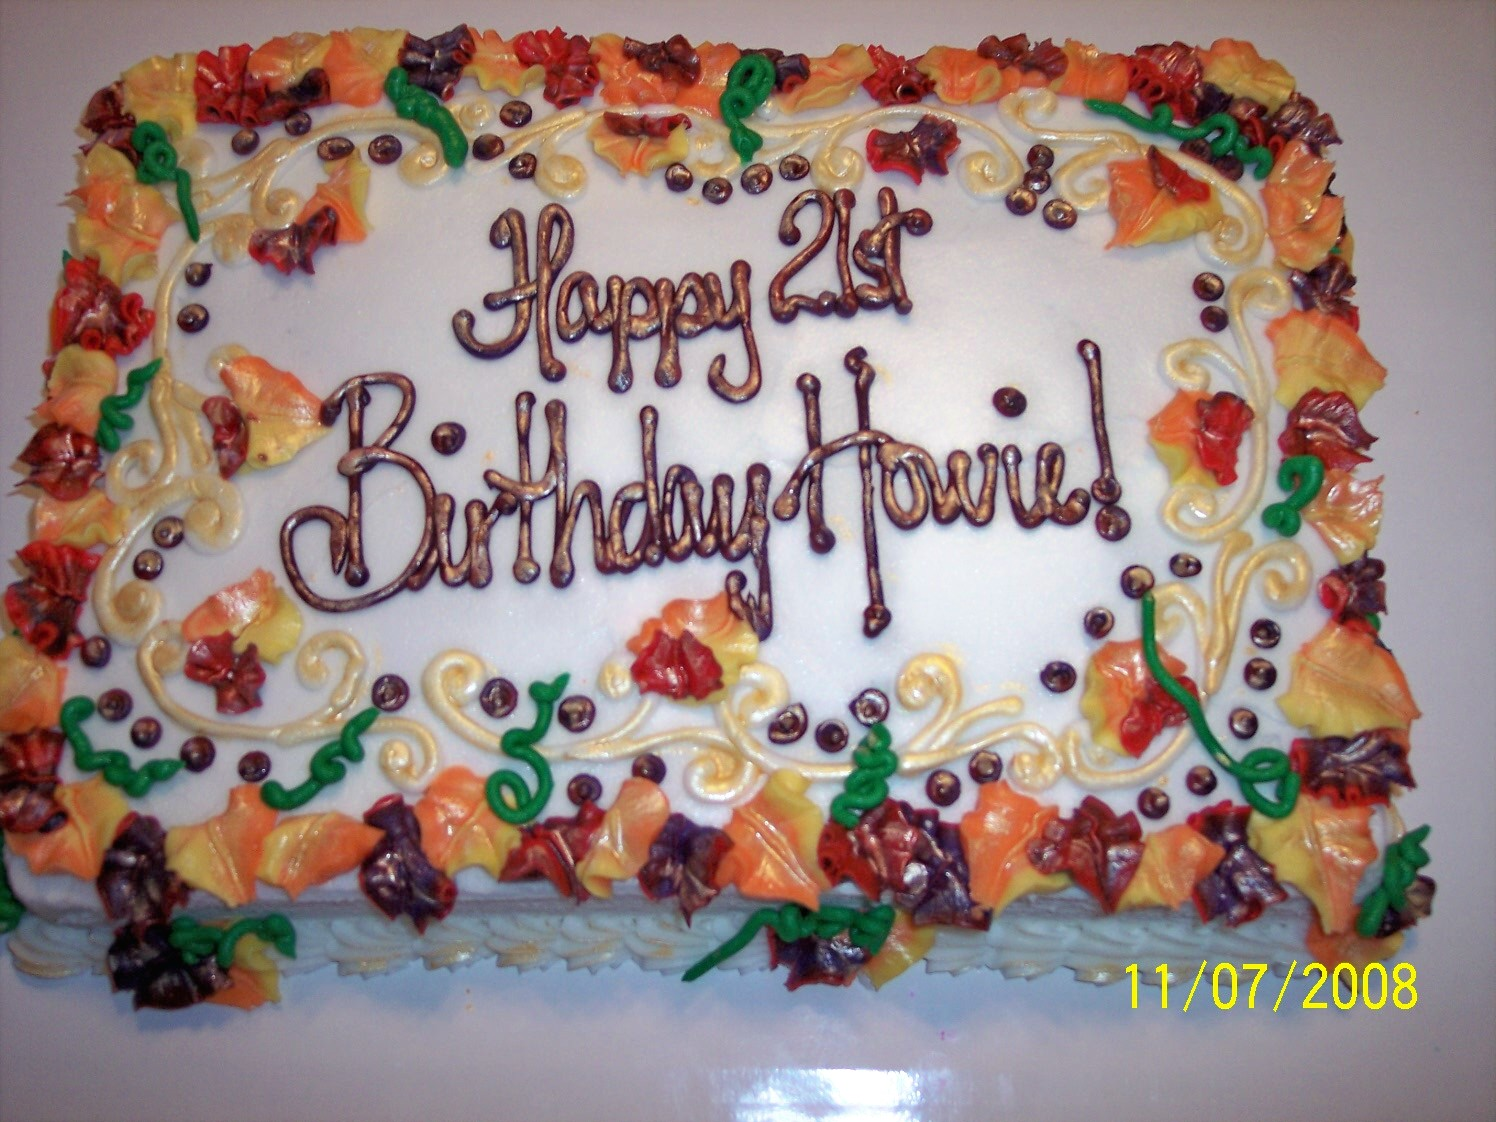 The Decorating an adult birthday sheet cake